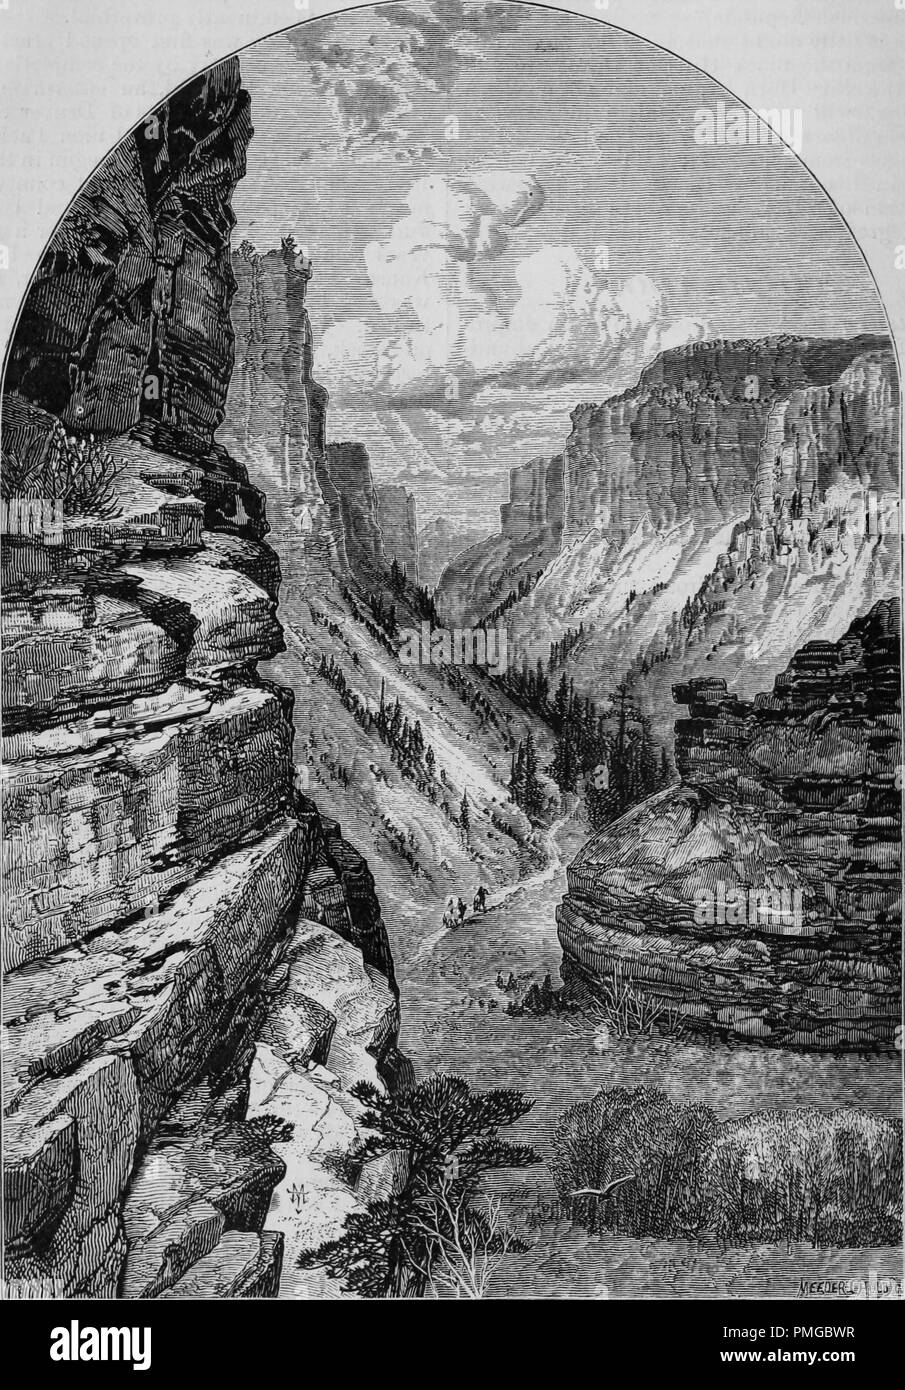 Engraving of the William's Canyon, Colorado Springs, from the book 'The Pacific tourist', 1877. Courtesy Internet Archive. () - Stock Image